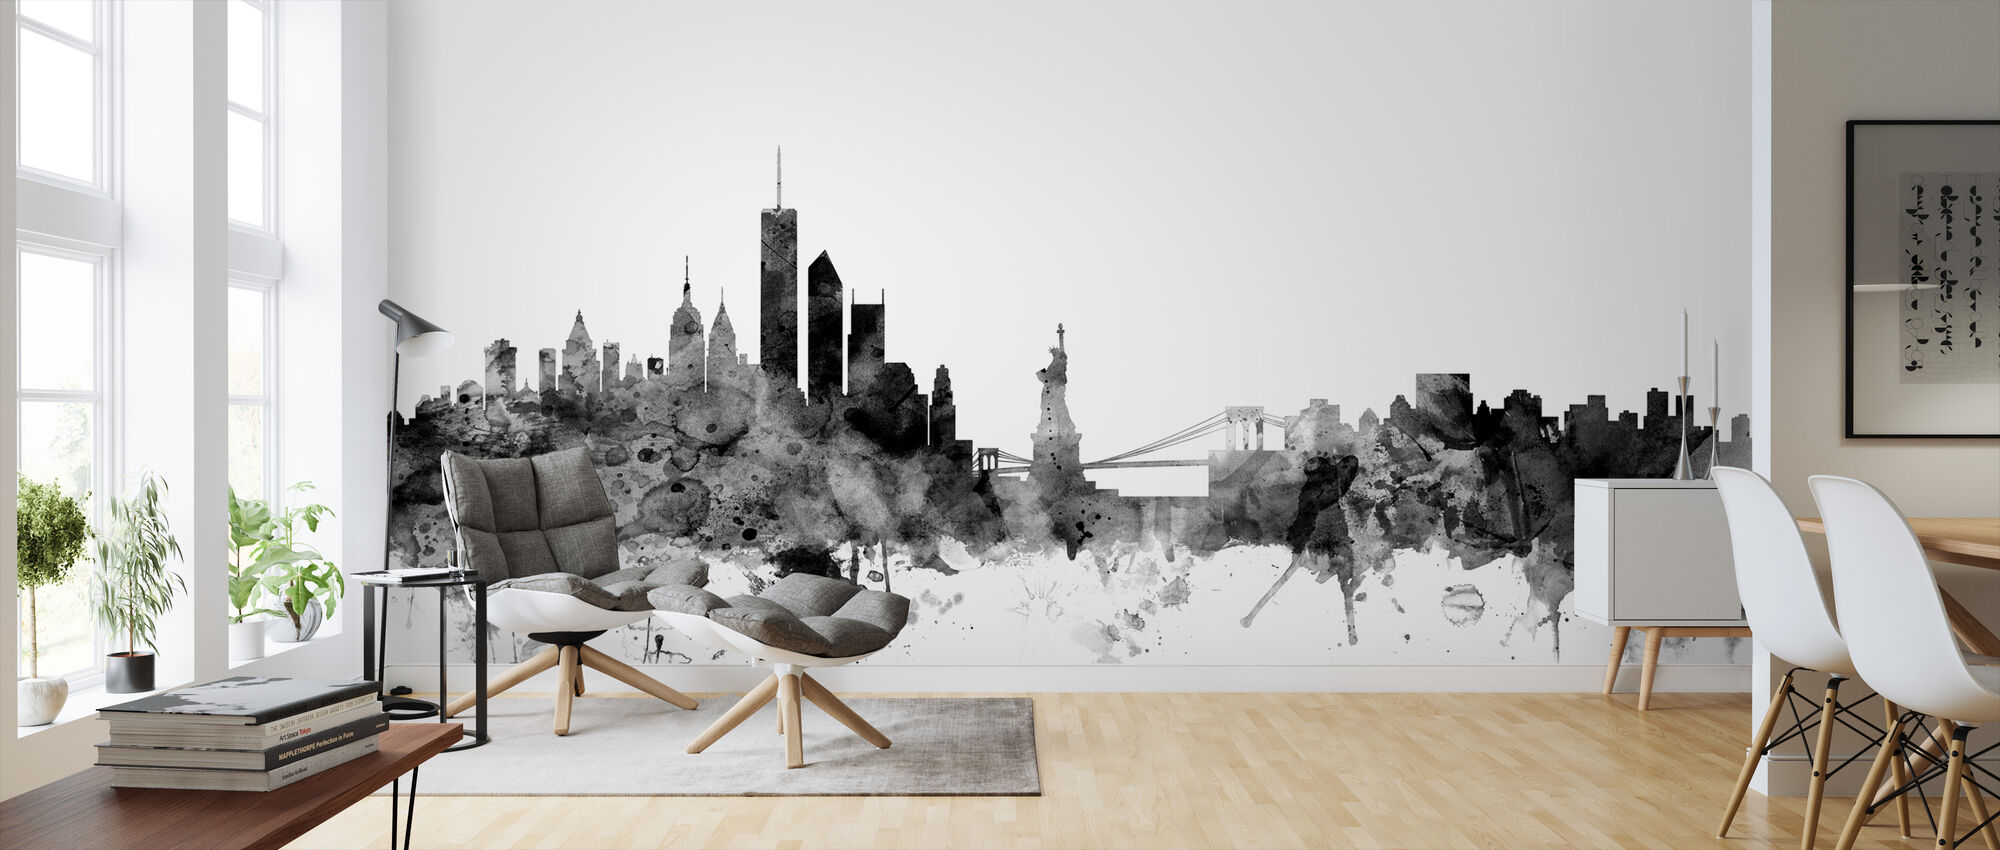 New York Skyline Black - Wallpaper - Living Room